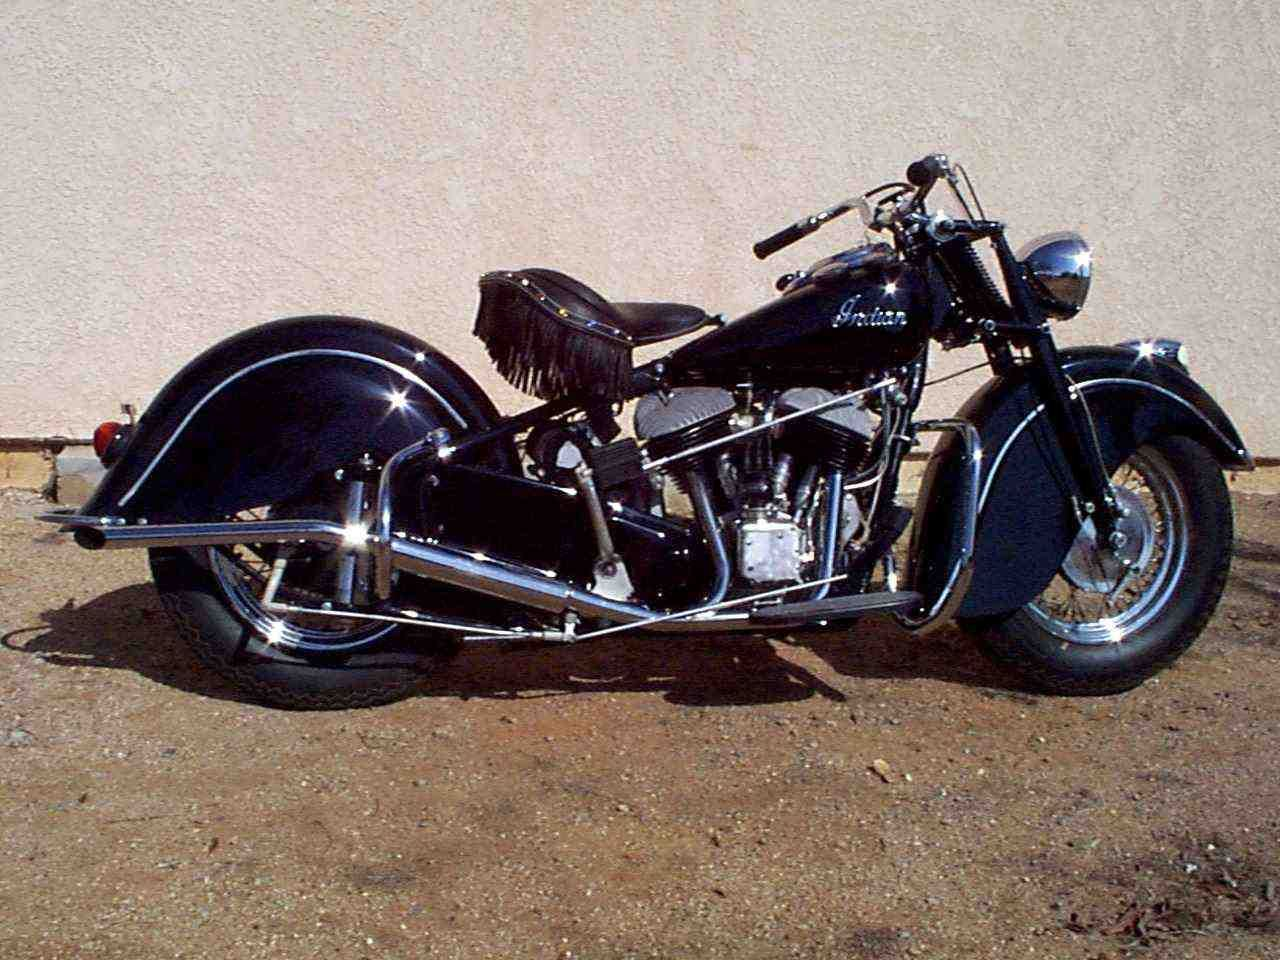 1948 Indian Chief Indian Motorcycle Vintage Indian Motorcycles Indian Chief [ 960 x 1280 Pixel ]